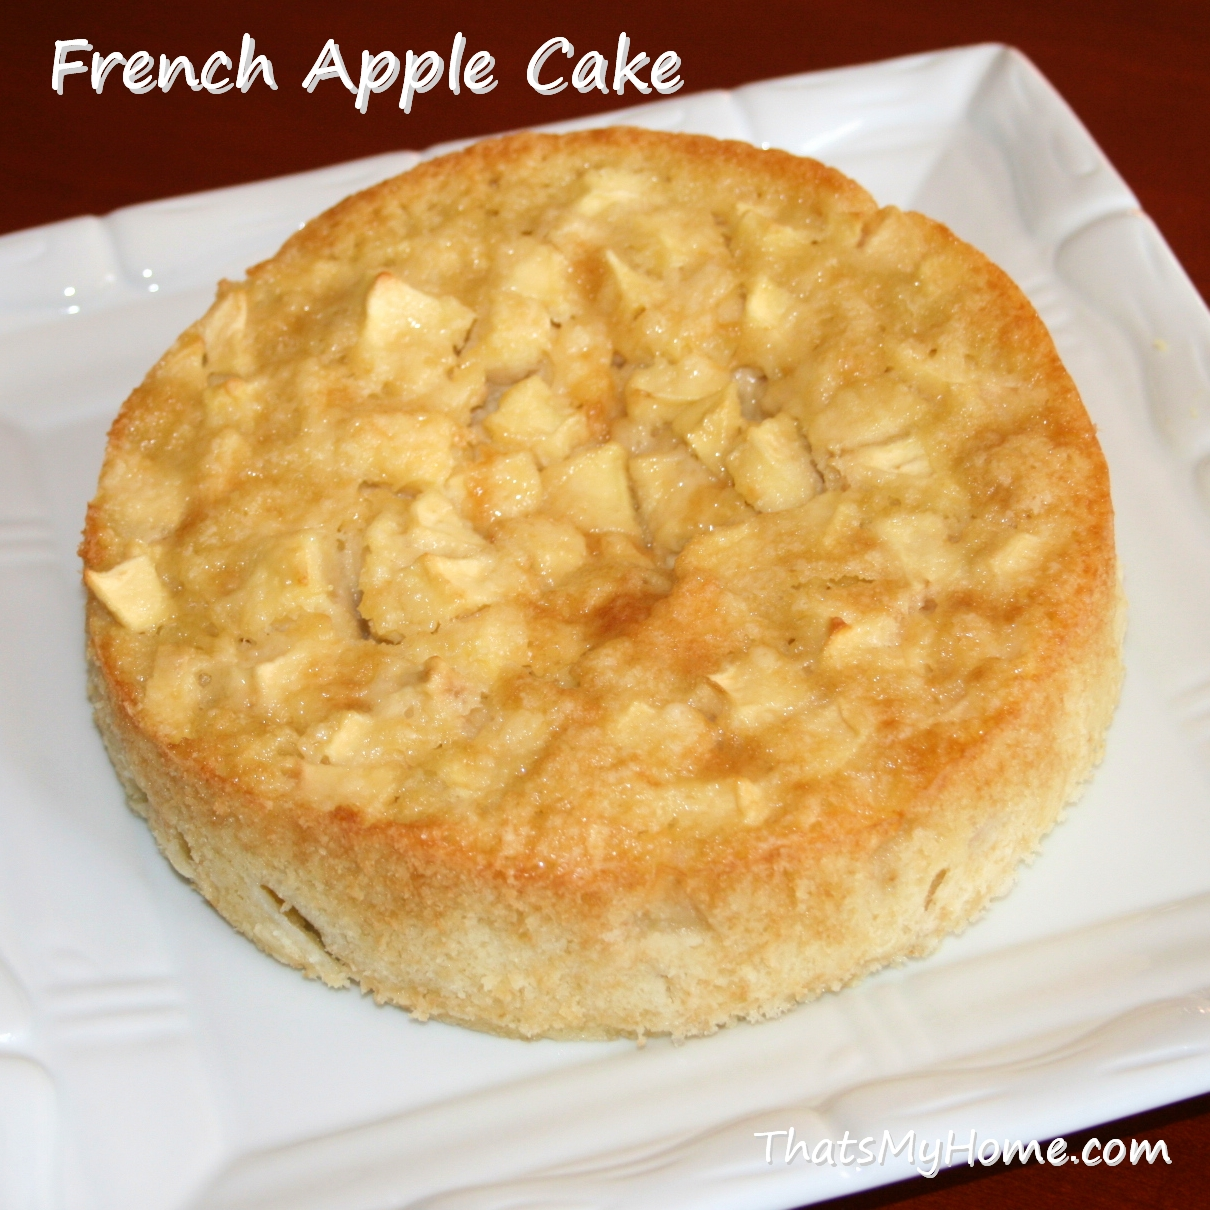 French Apple Cake - Recipes, Food and Cooking